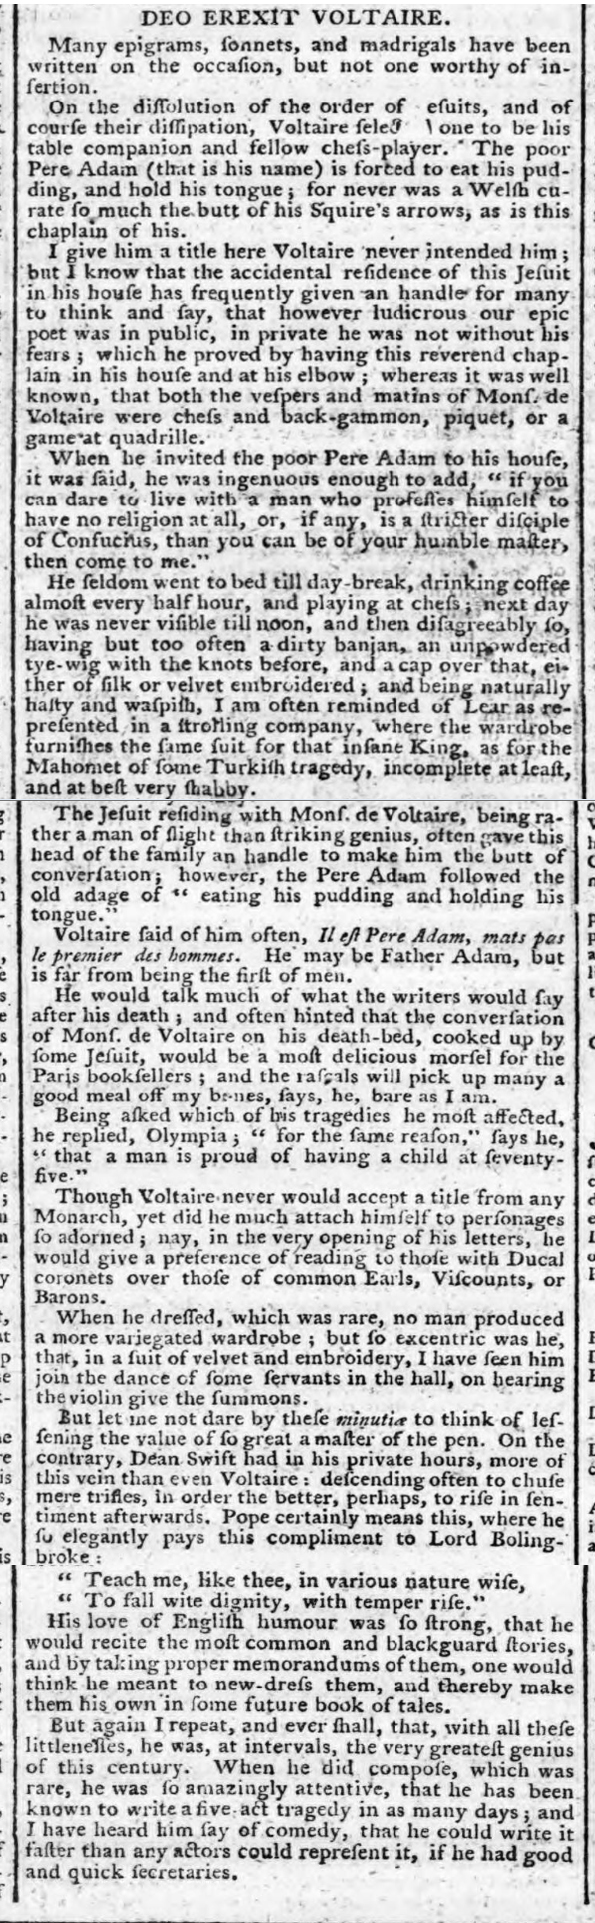 historical newspaper story about the death of Voltaire